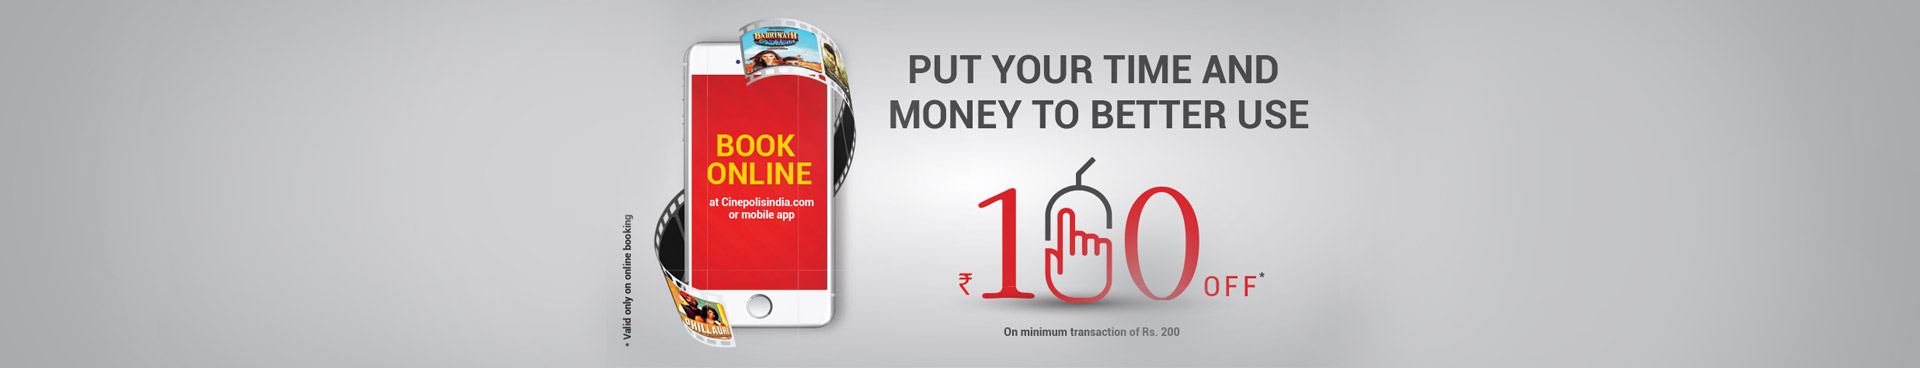 Rs 100 Off